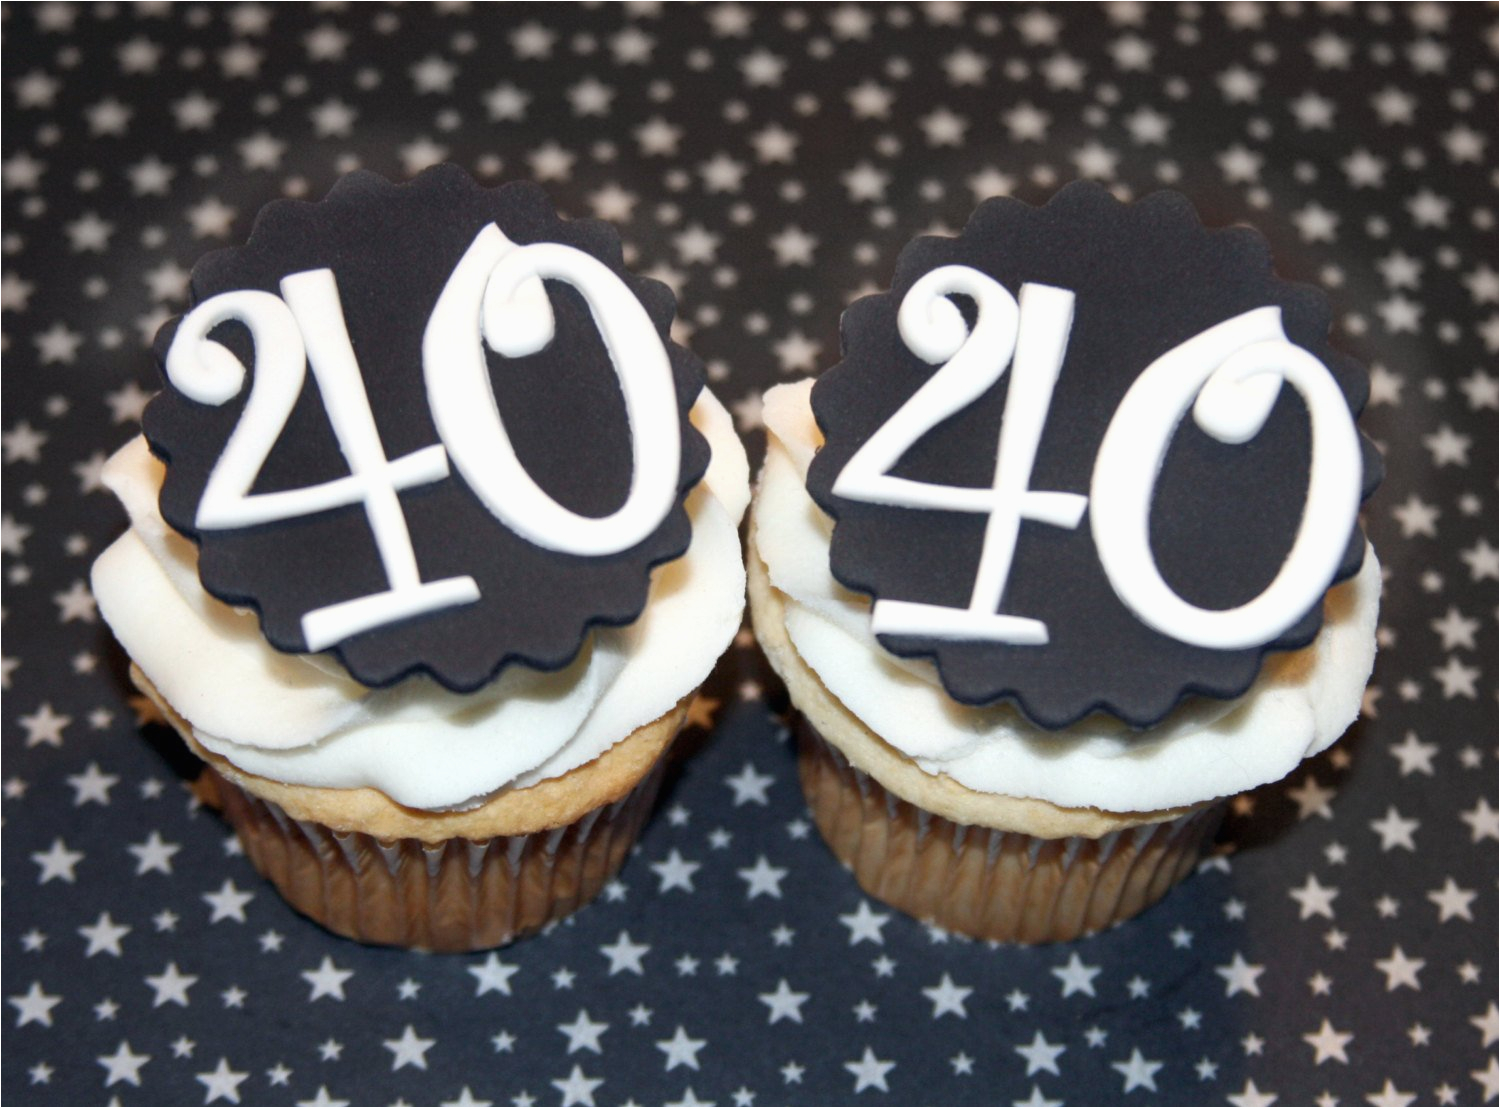 40th birthday cake toppers